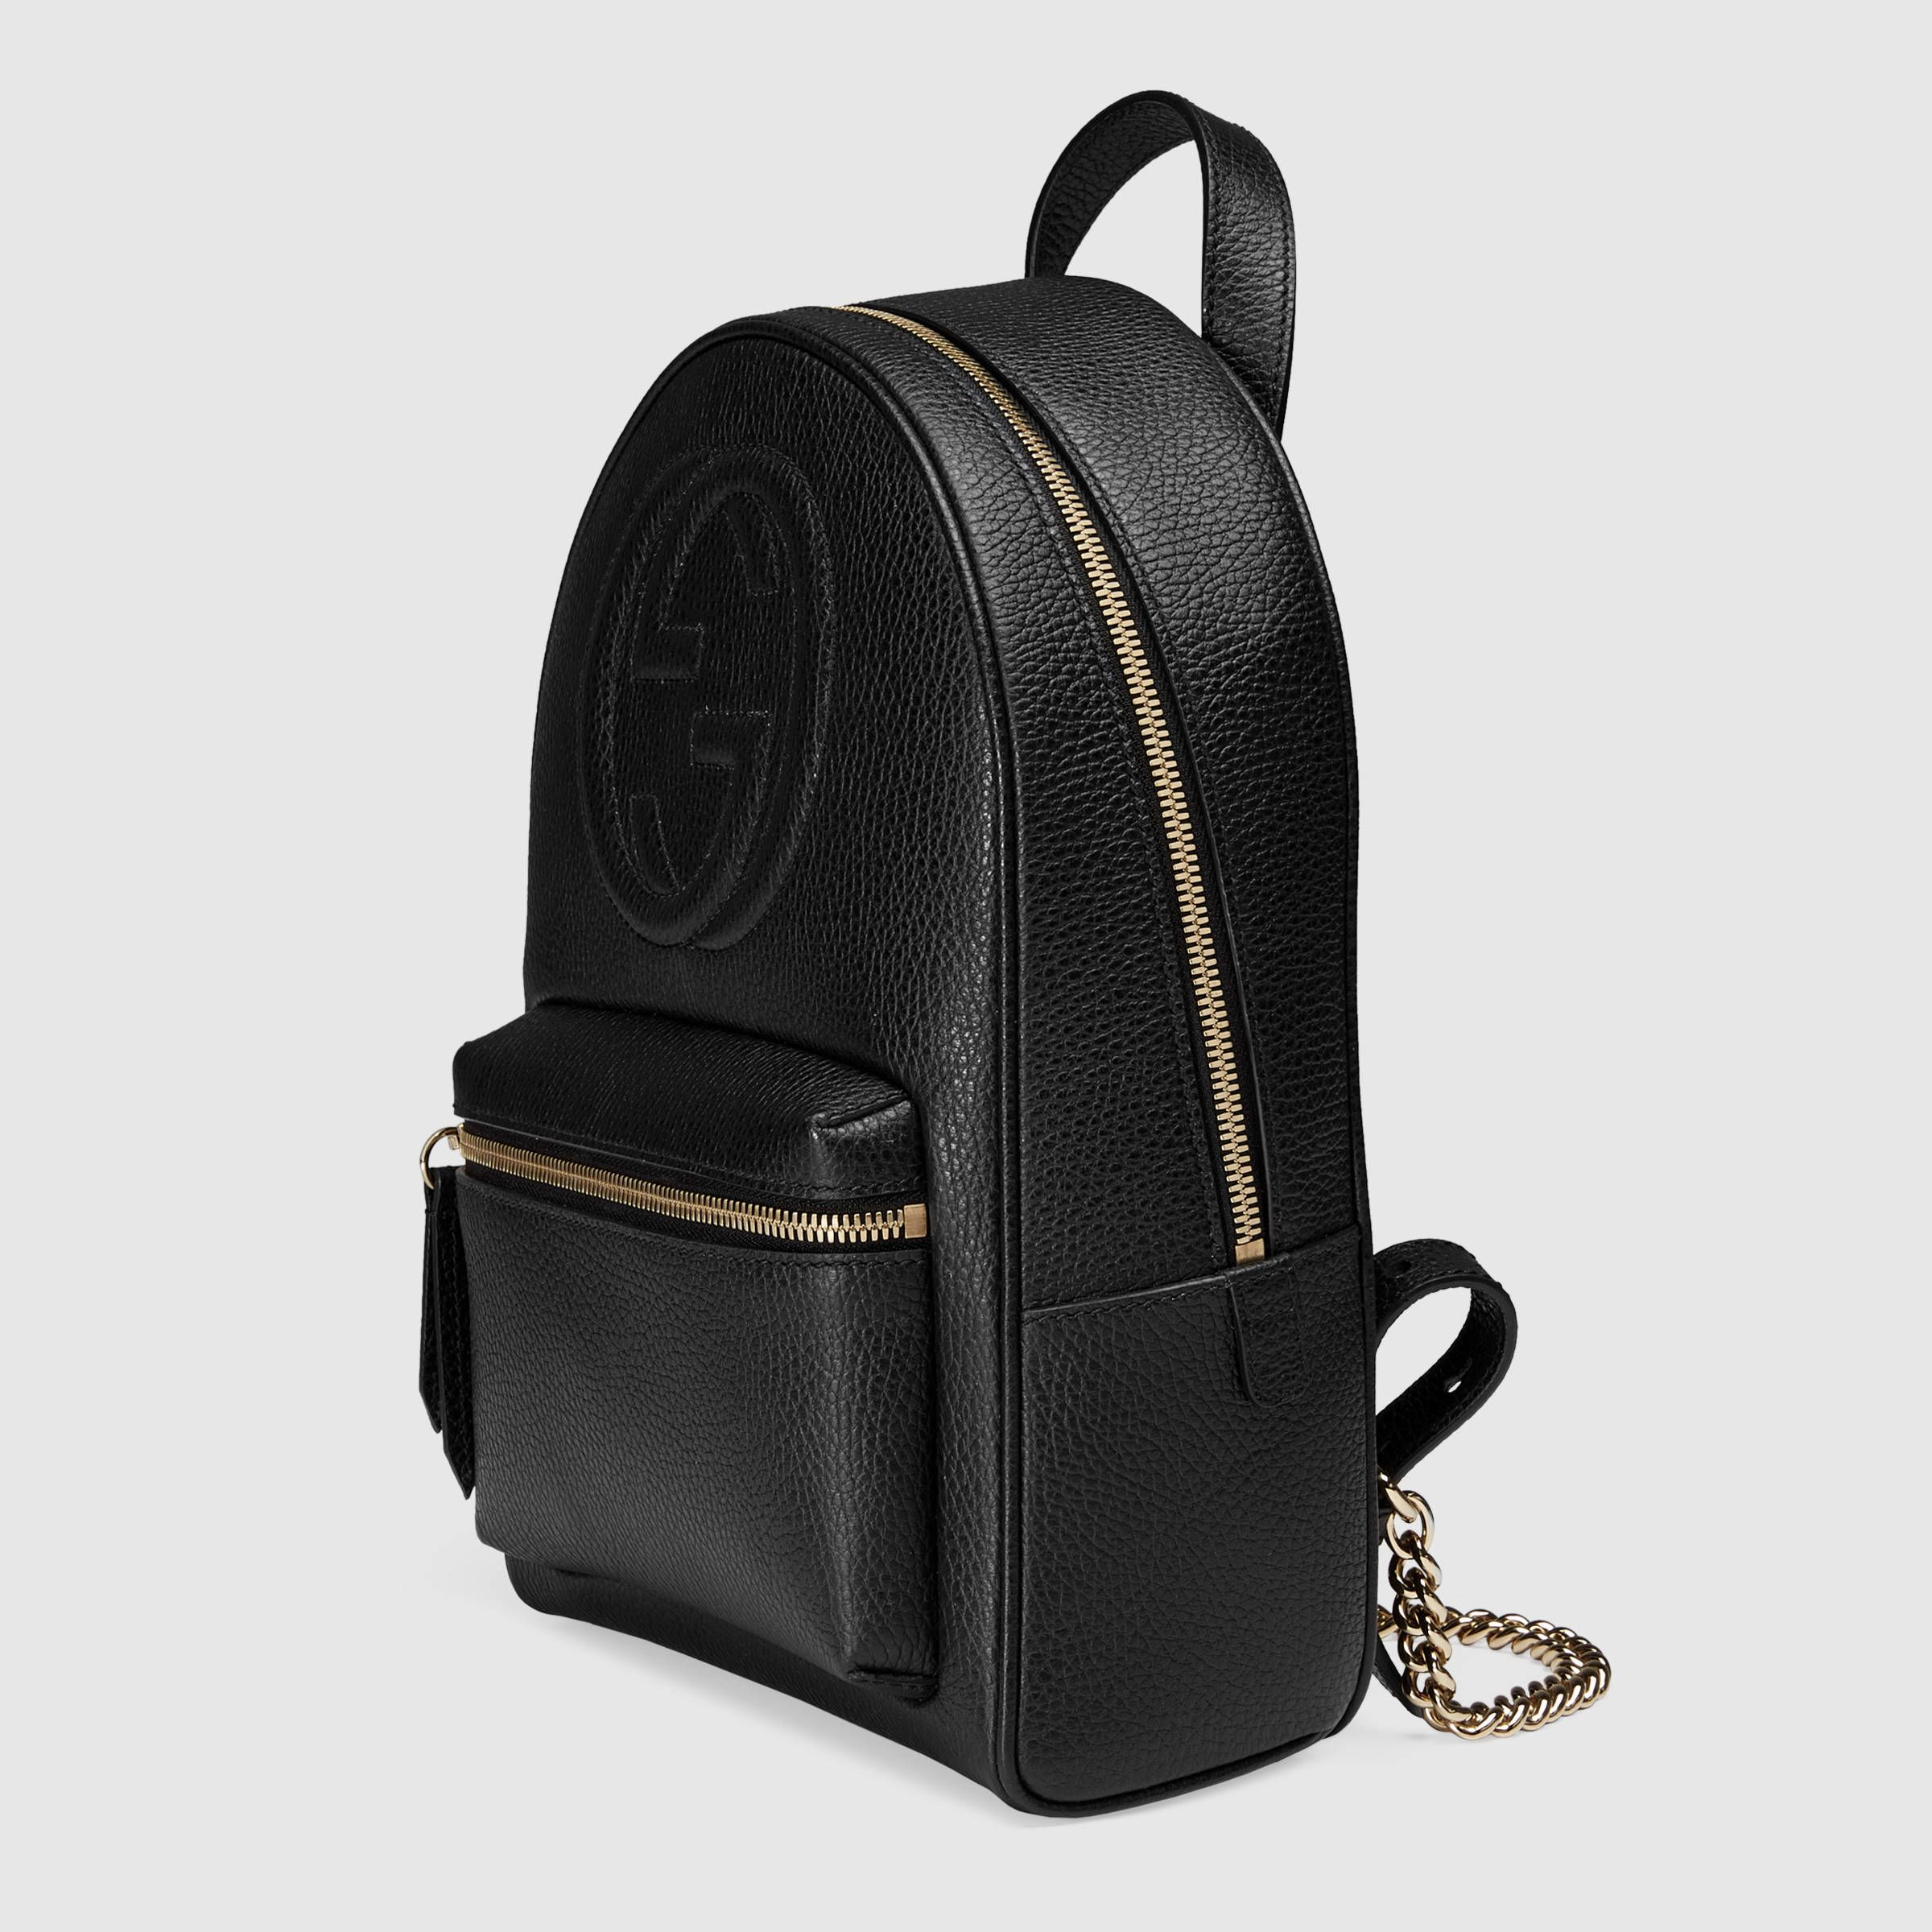 Soho leather chain backpack - Gucci Women s Backpacks 431570CAO0G1000 8894457c9824a